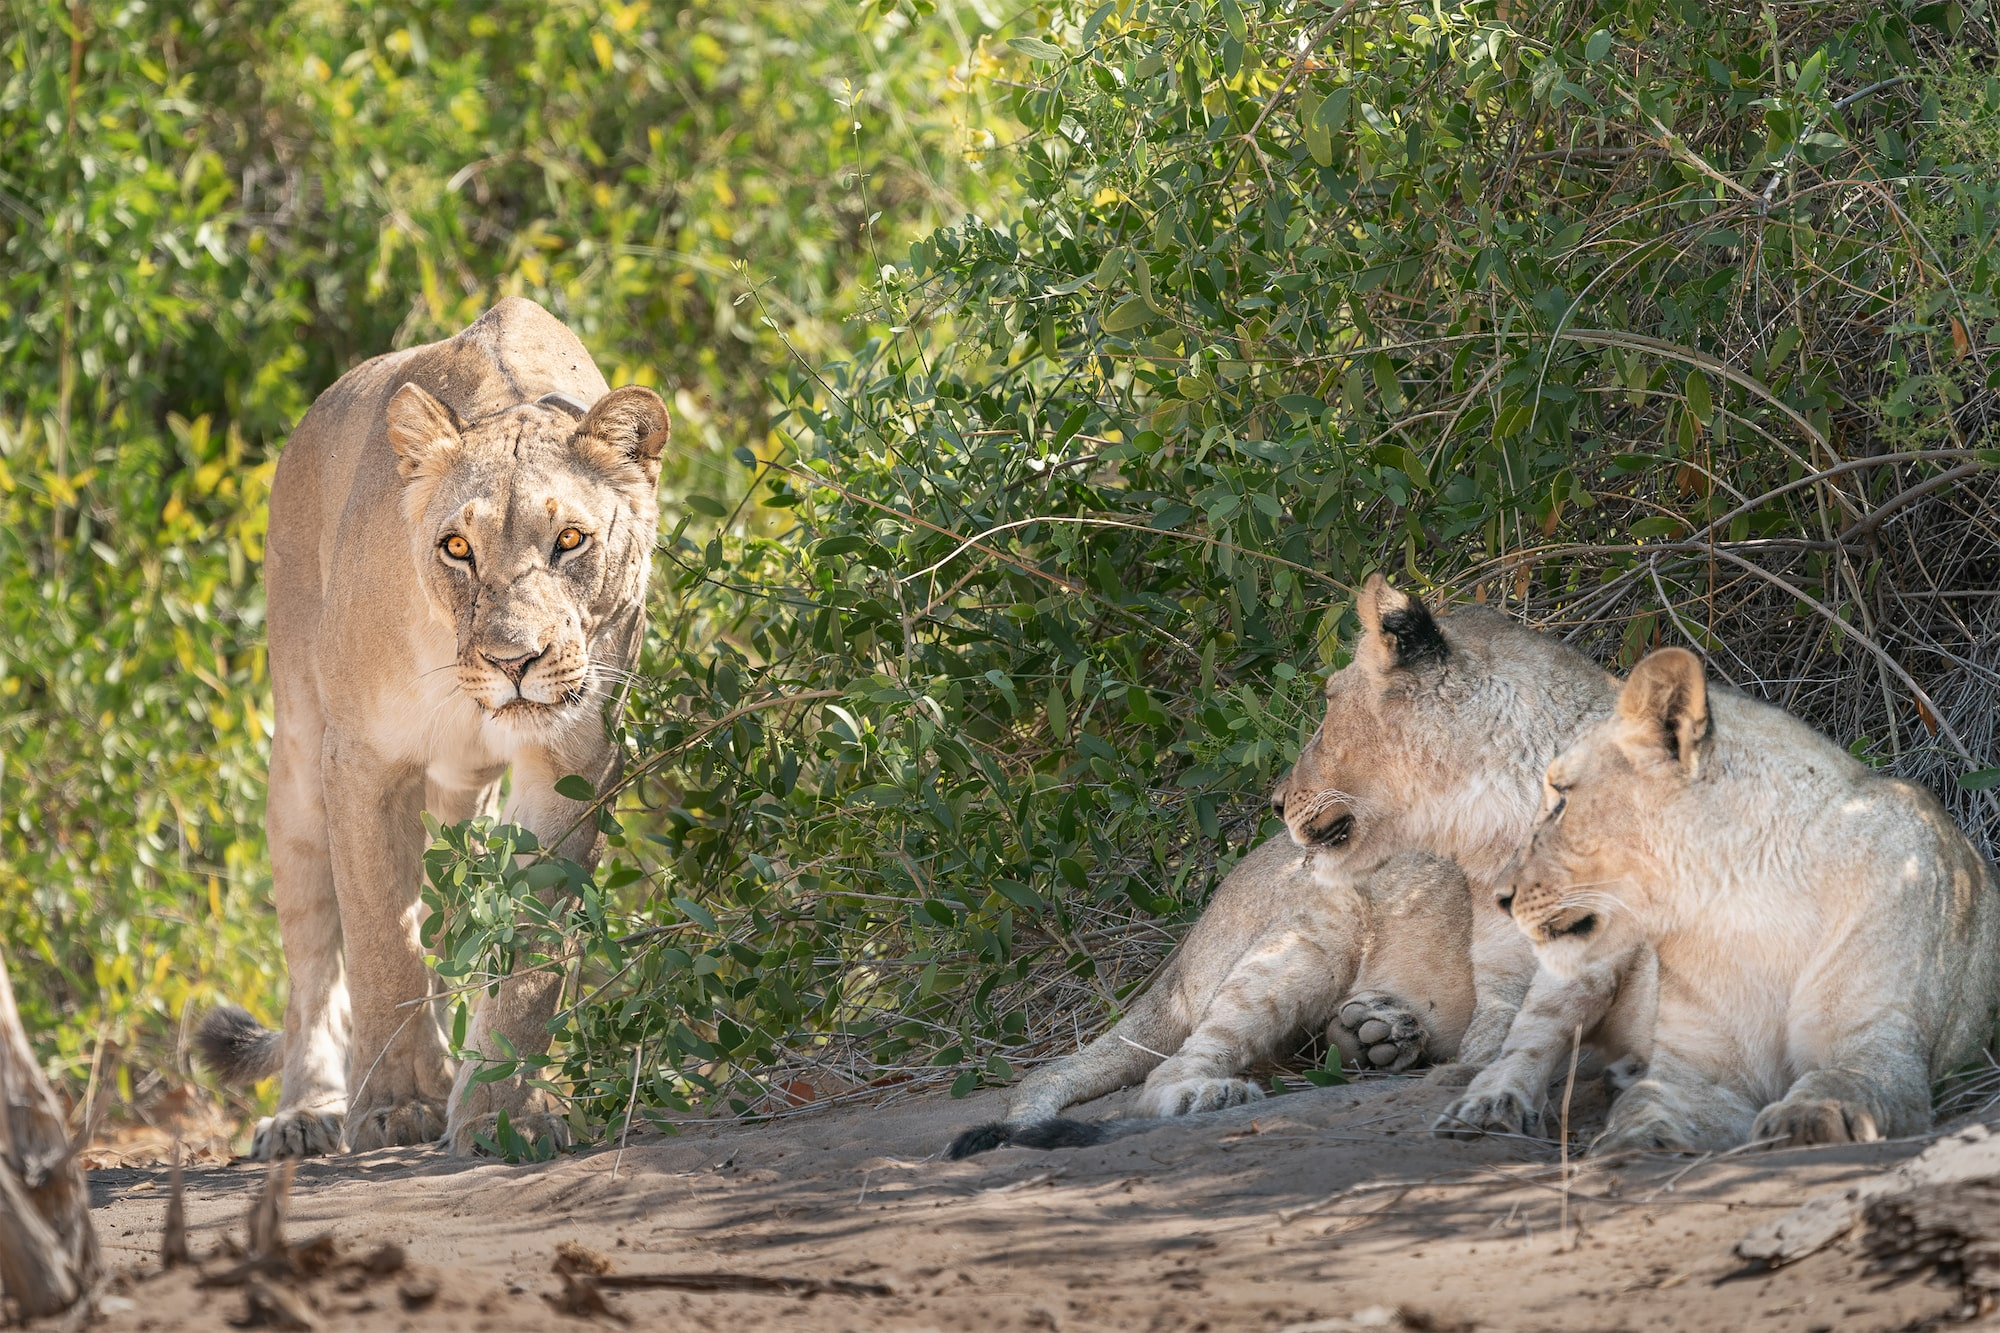 Lionesses take shelter in the bushes to hide from the heat of the blistering sun.